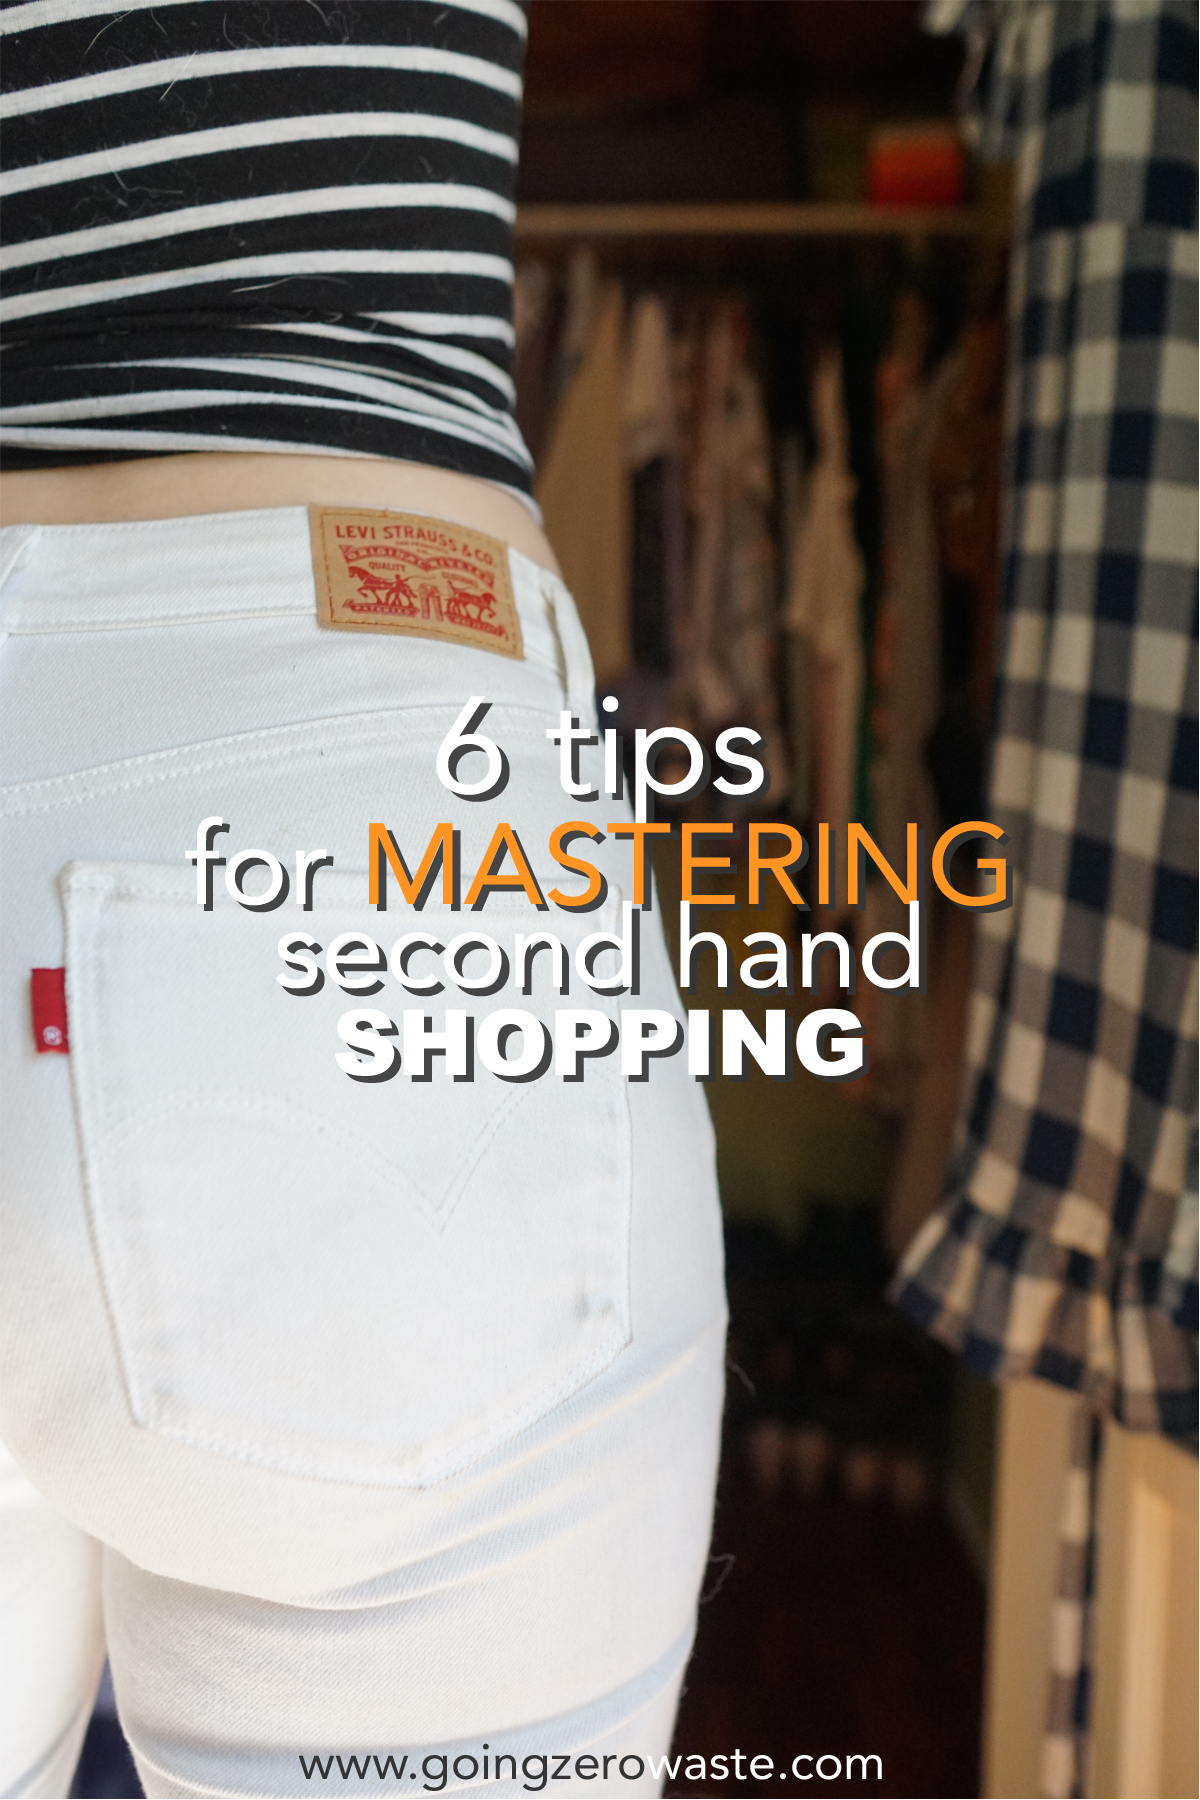 6 tips for mastering second hand shopping from www.goingzerowaste.com #zerowaste #secondhand #thrifting